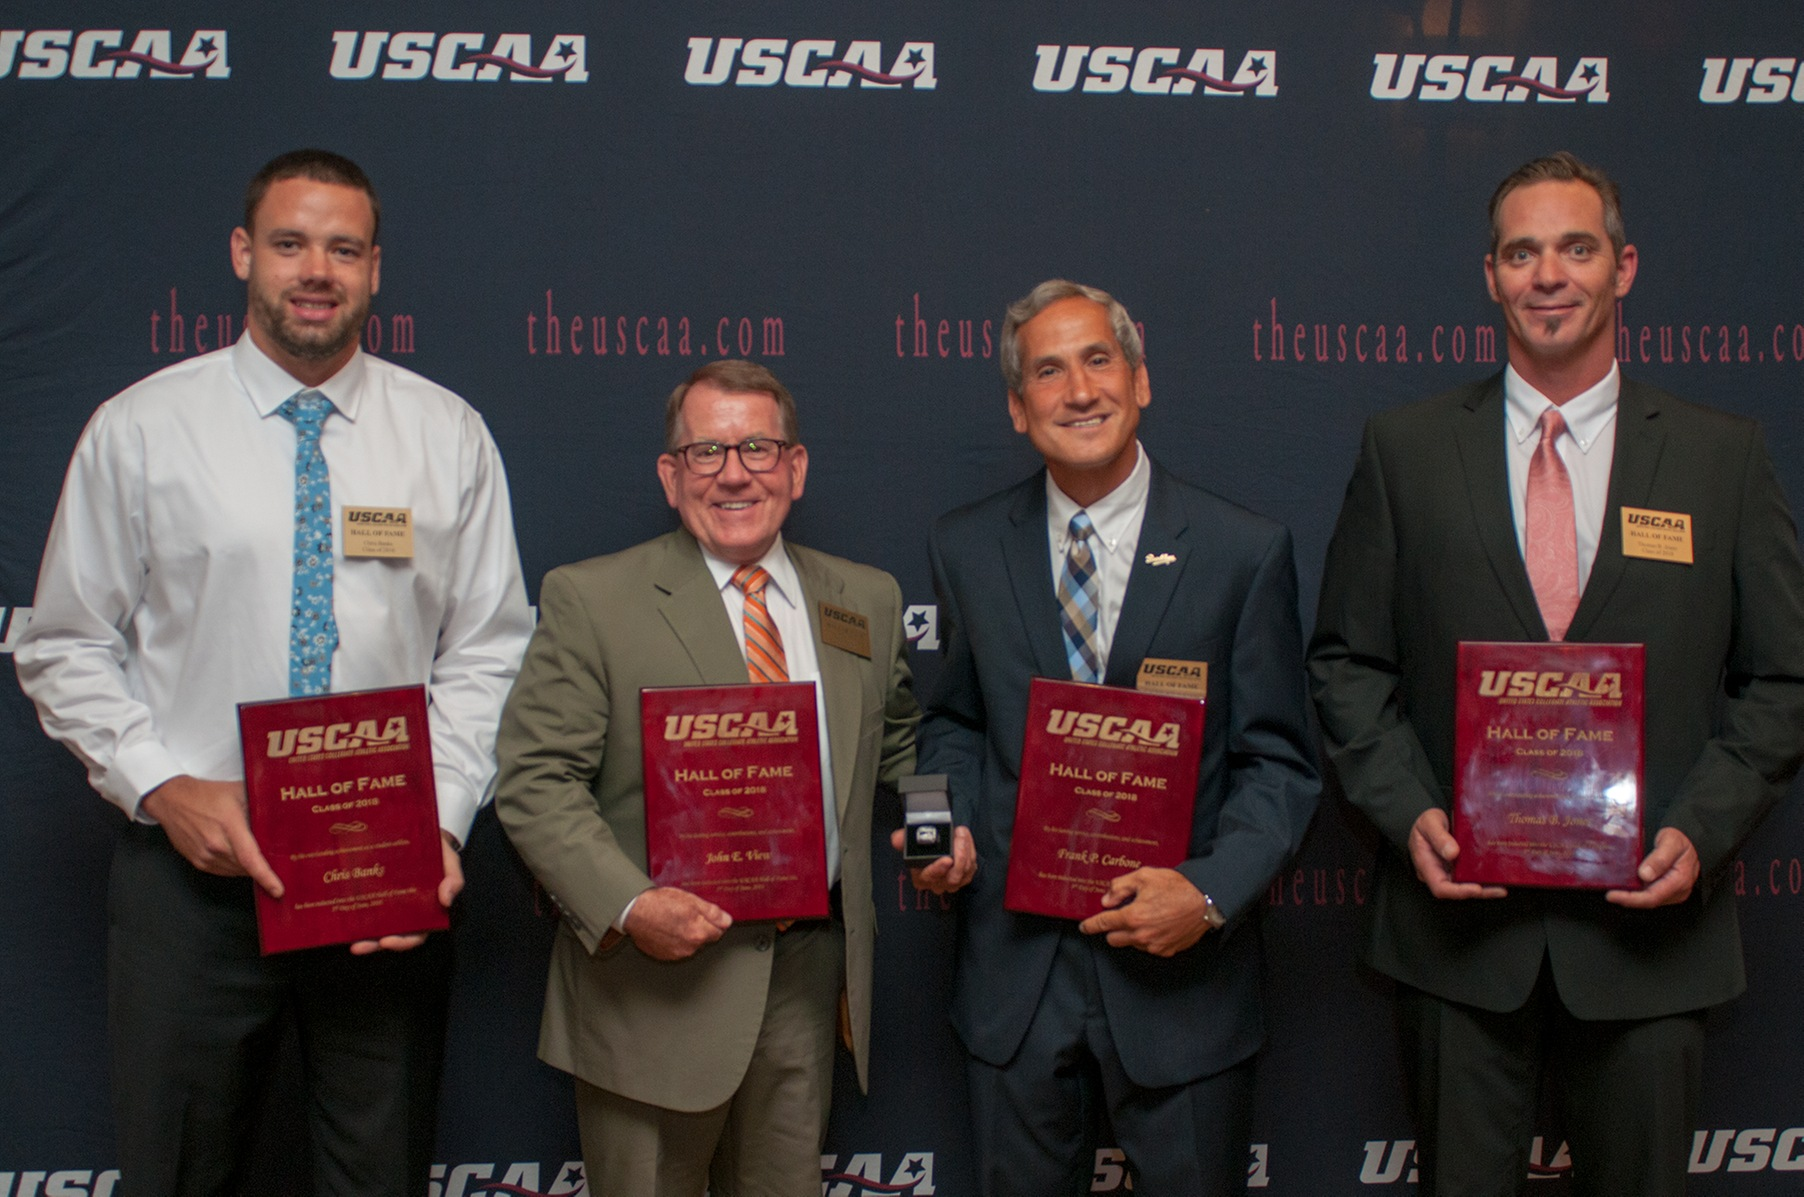 Former HVIAC Coaches Frank P. Carbone and John View Inducted into USCAA Hall of Fame